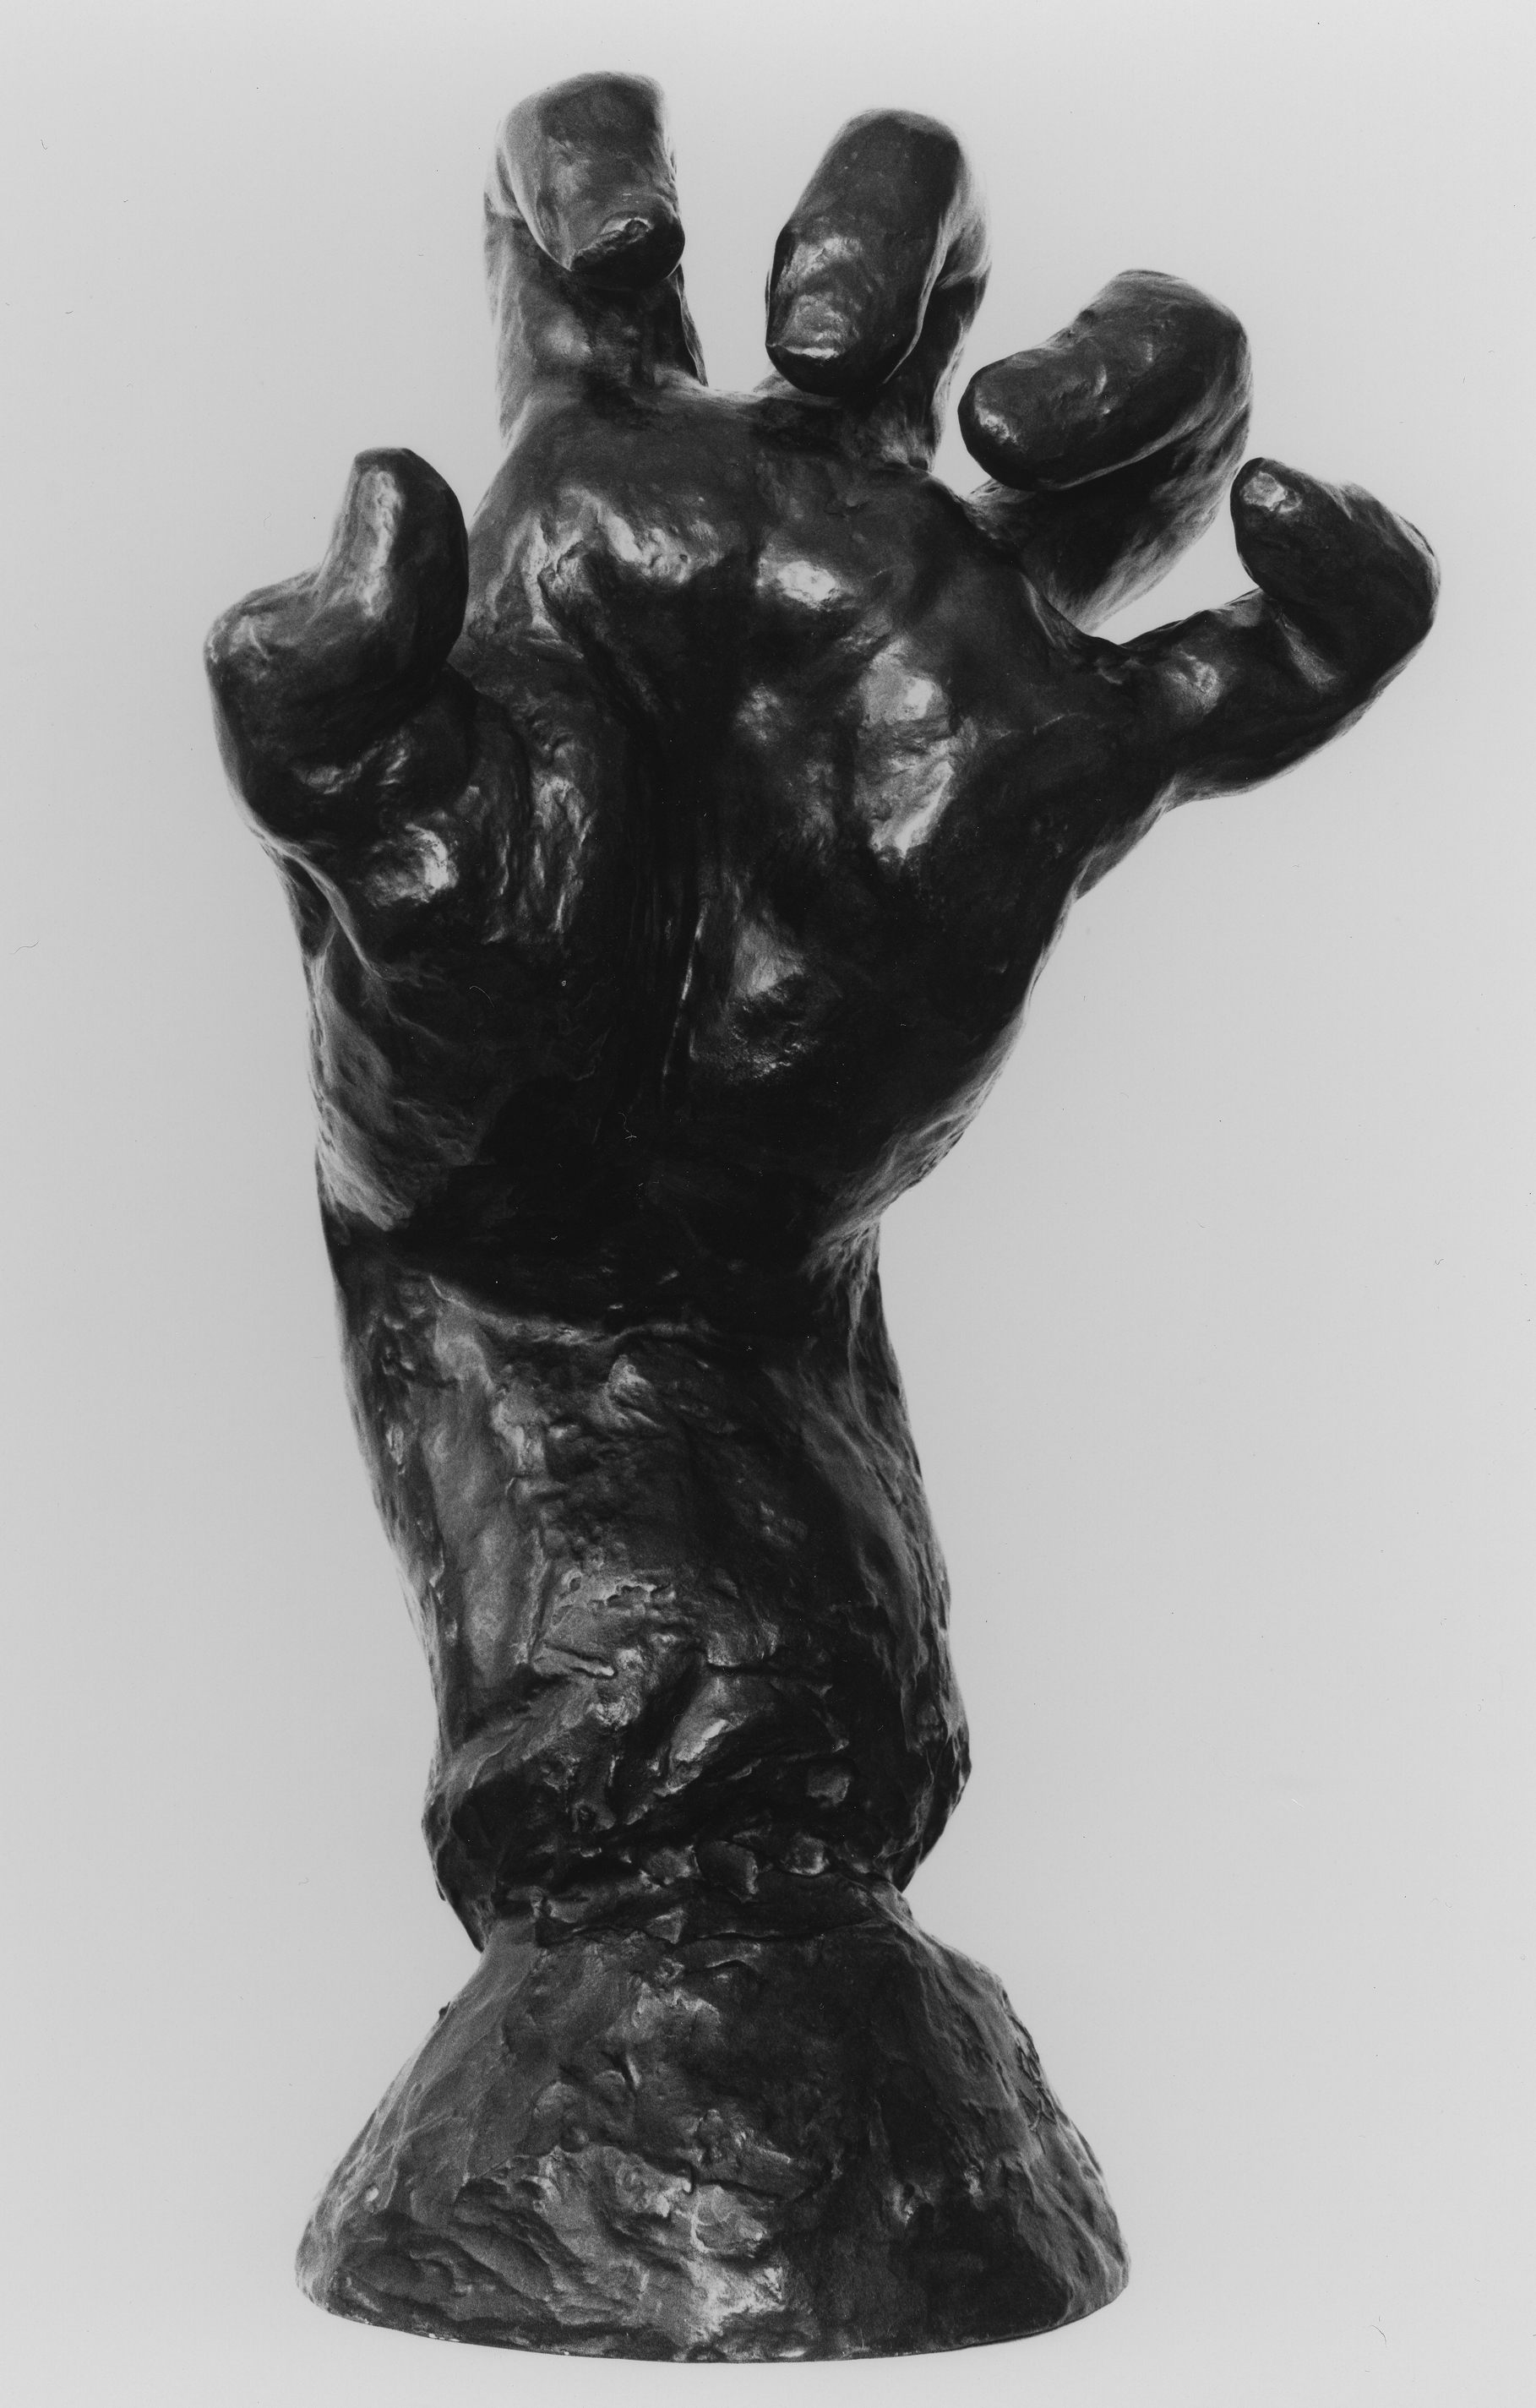 Using A 3-D Version Of Rodin's Hands To Understand Anatomy